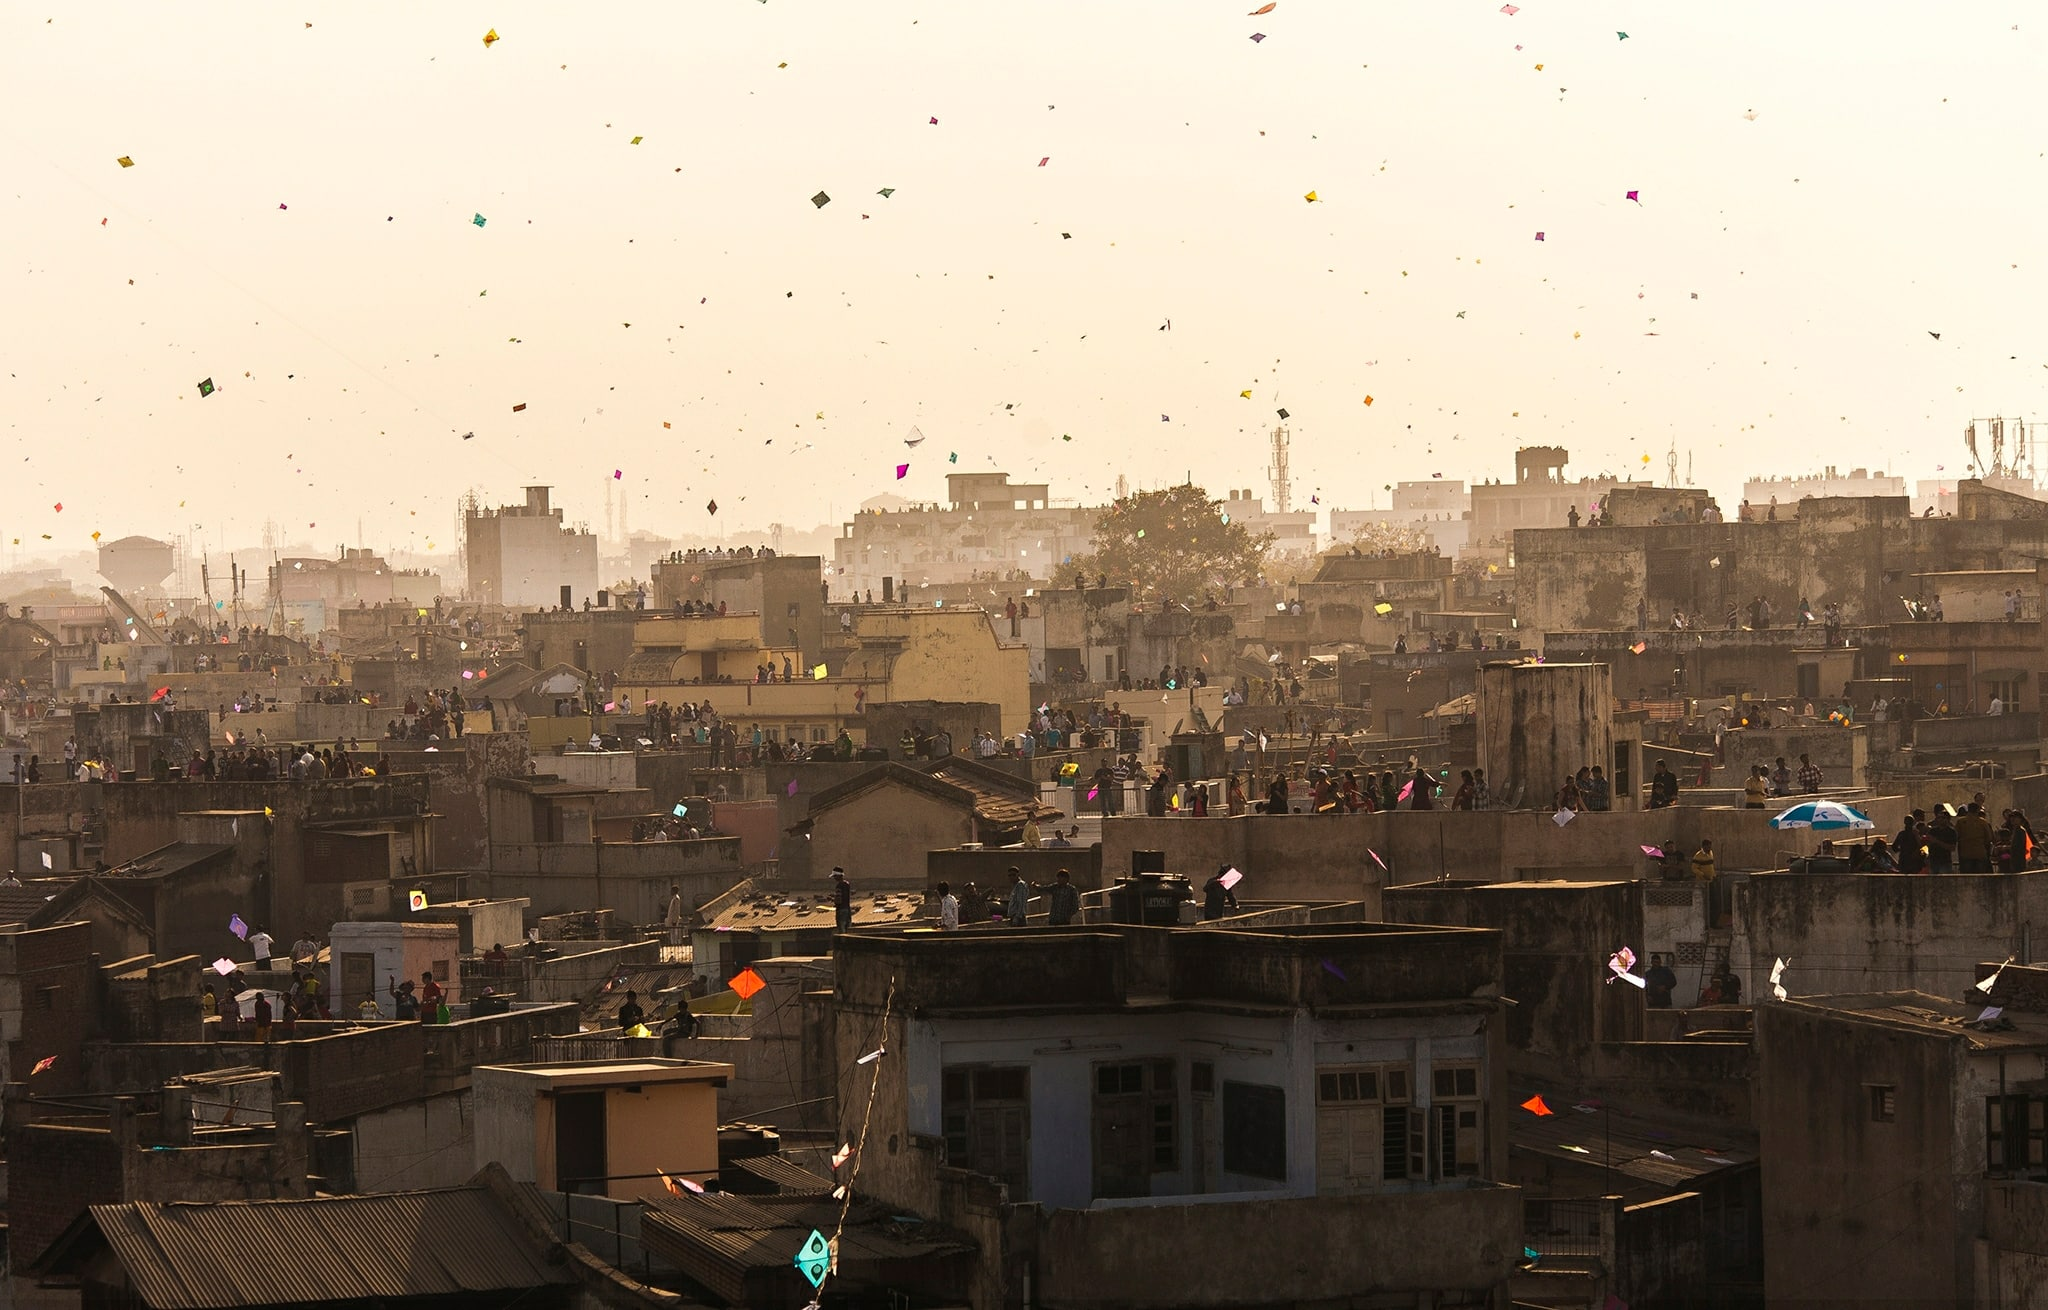 let s enjoy basant a huge kite flying festival explore  hundreds of kites fly high in the skies over the city of ahmedabad